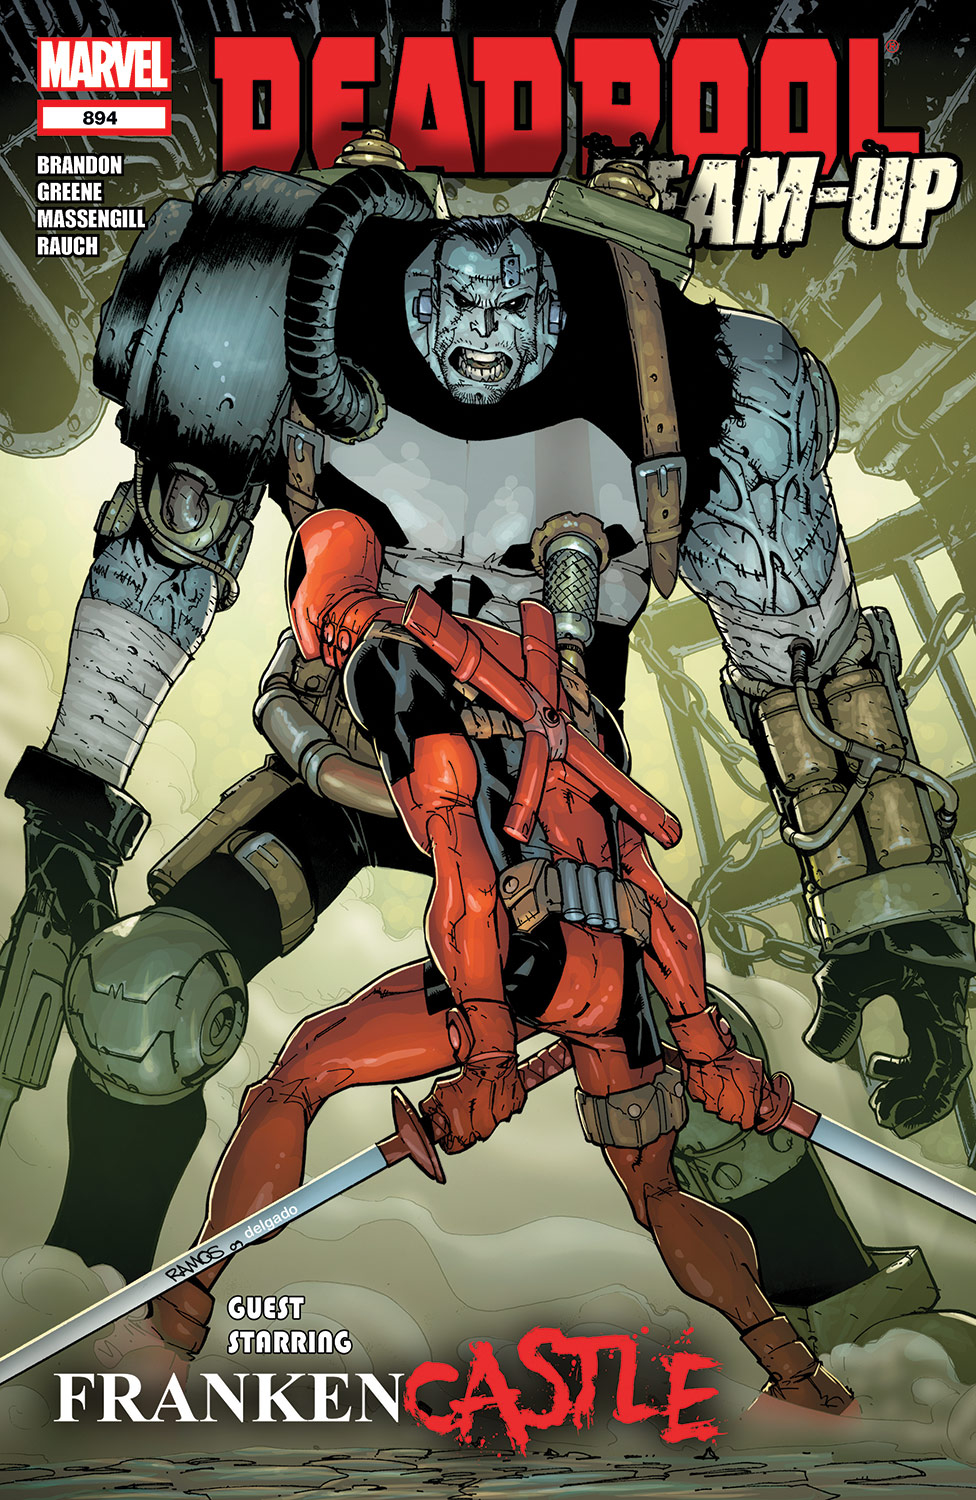 Deadpool Team-Up (2009) #894